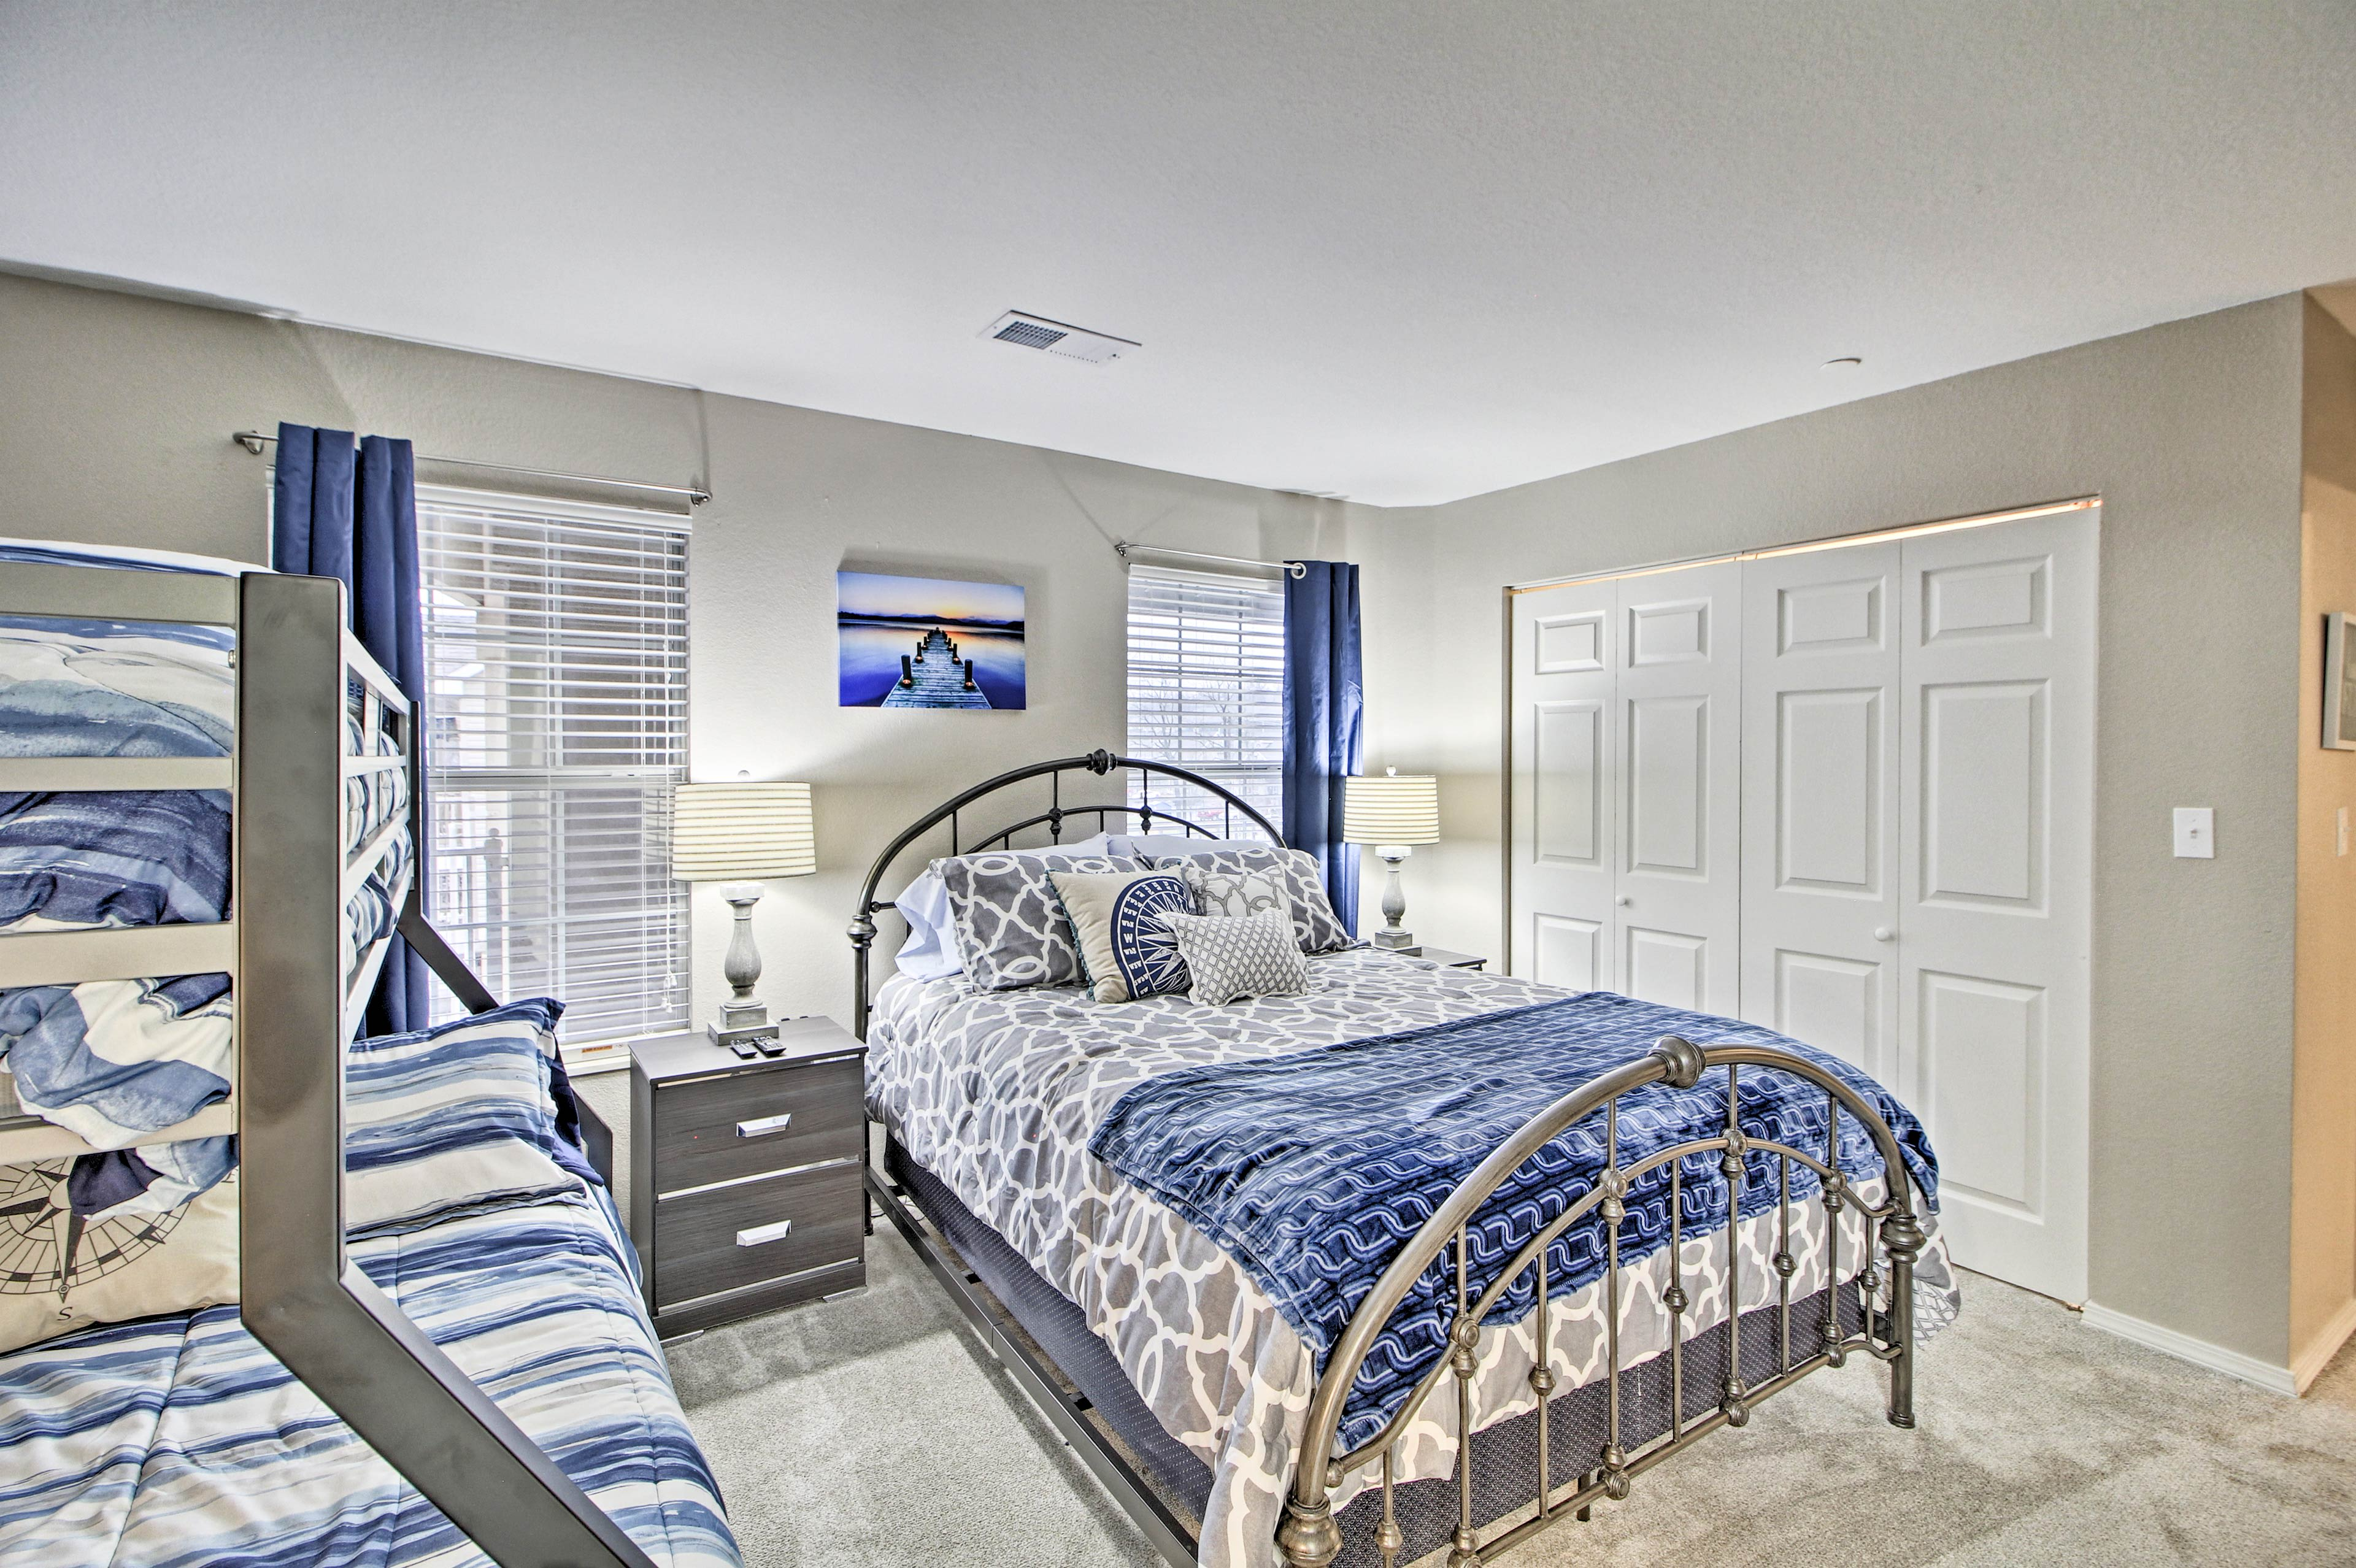 The second bedroom features a twin-over full bunk bed & queen bed.